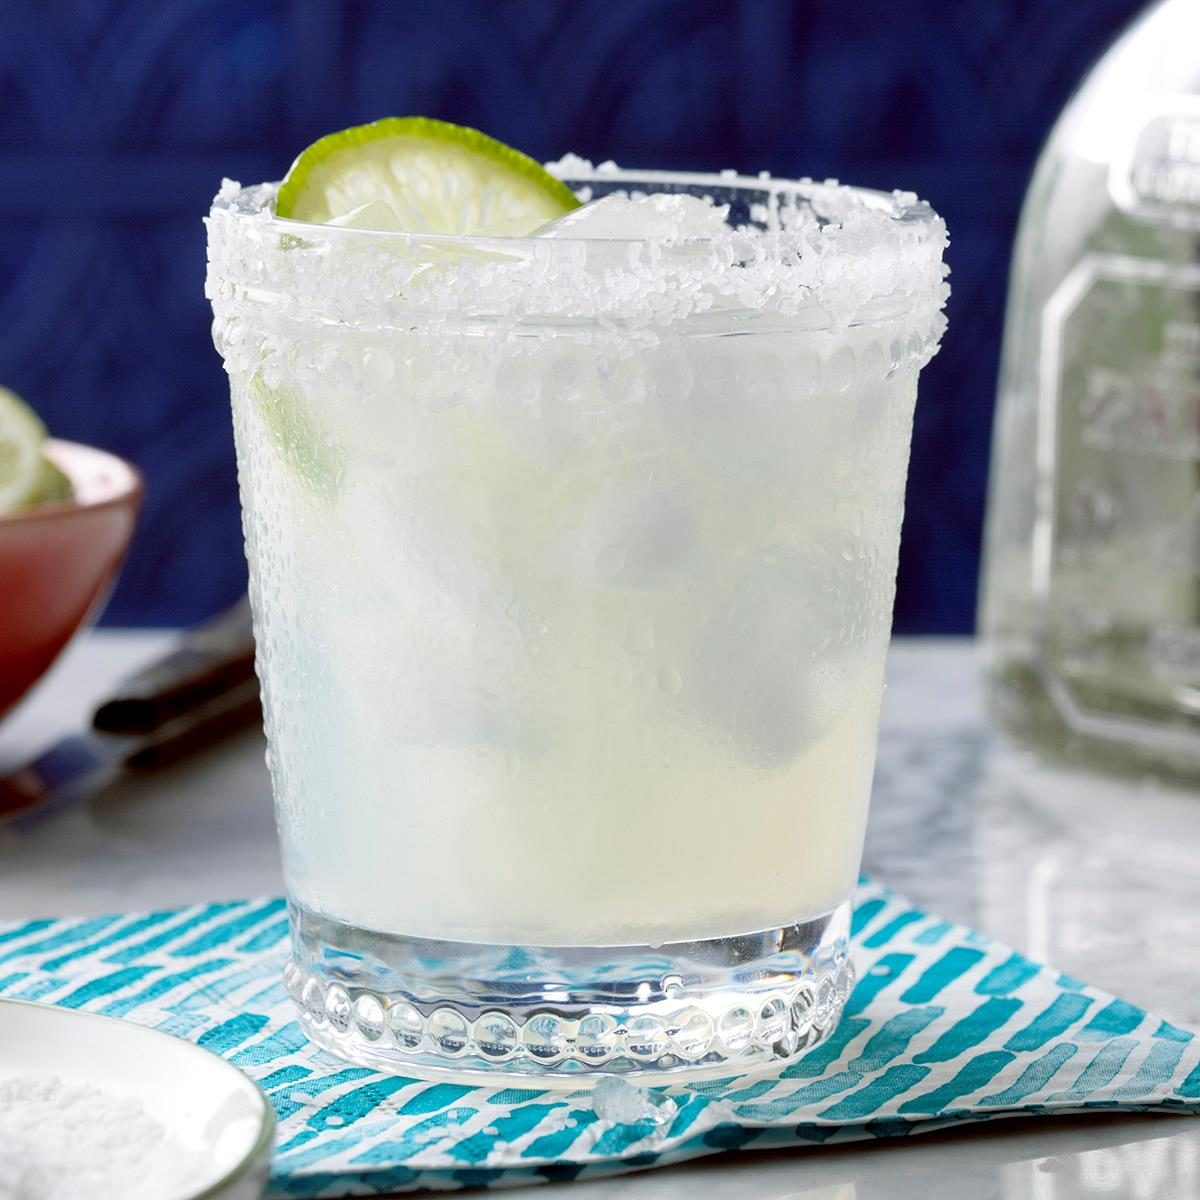 9 Classic Tequila Mixed Drinks You Should Know